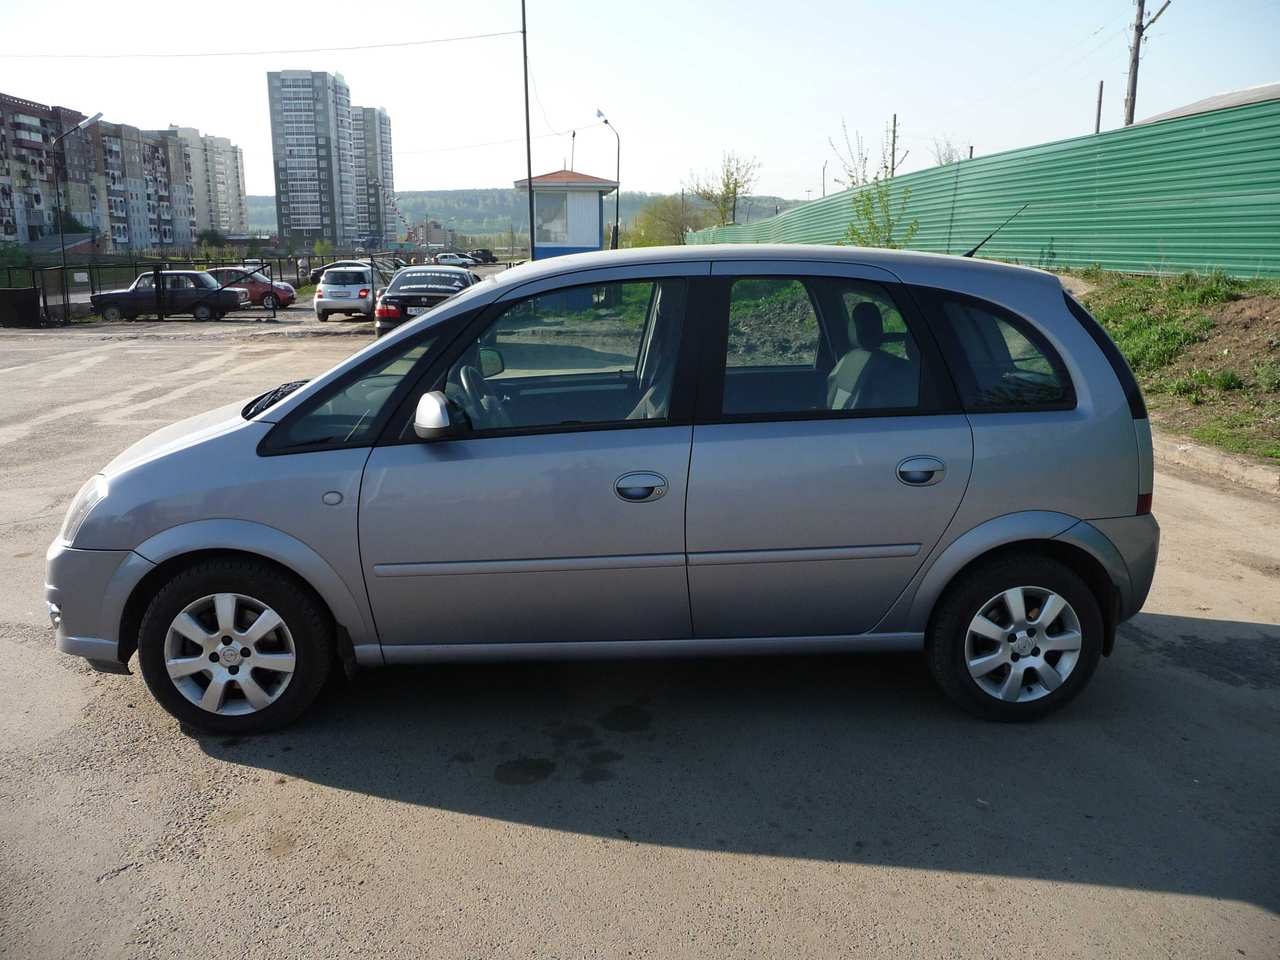 2007 opel meriva photos 1 6 gasoline ff automatic for sale. Black Bedroom Furniture Sets. Home Design Ideas